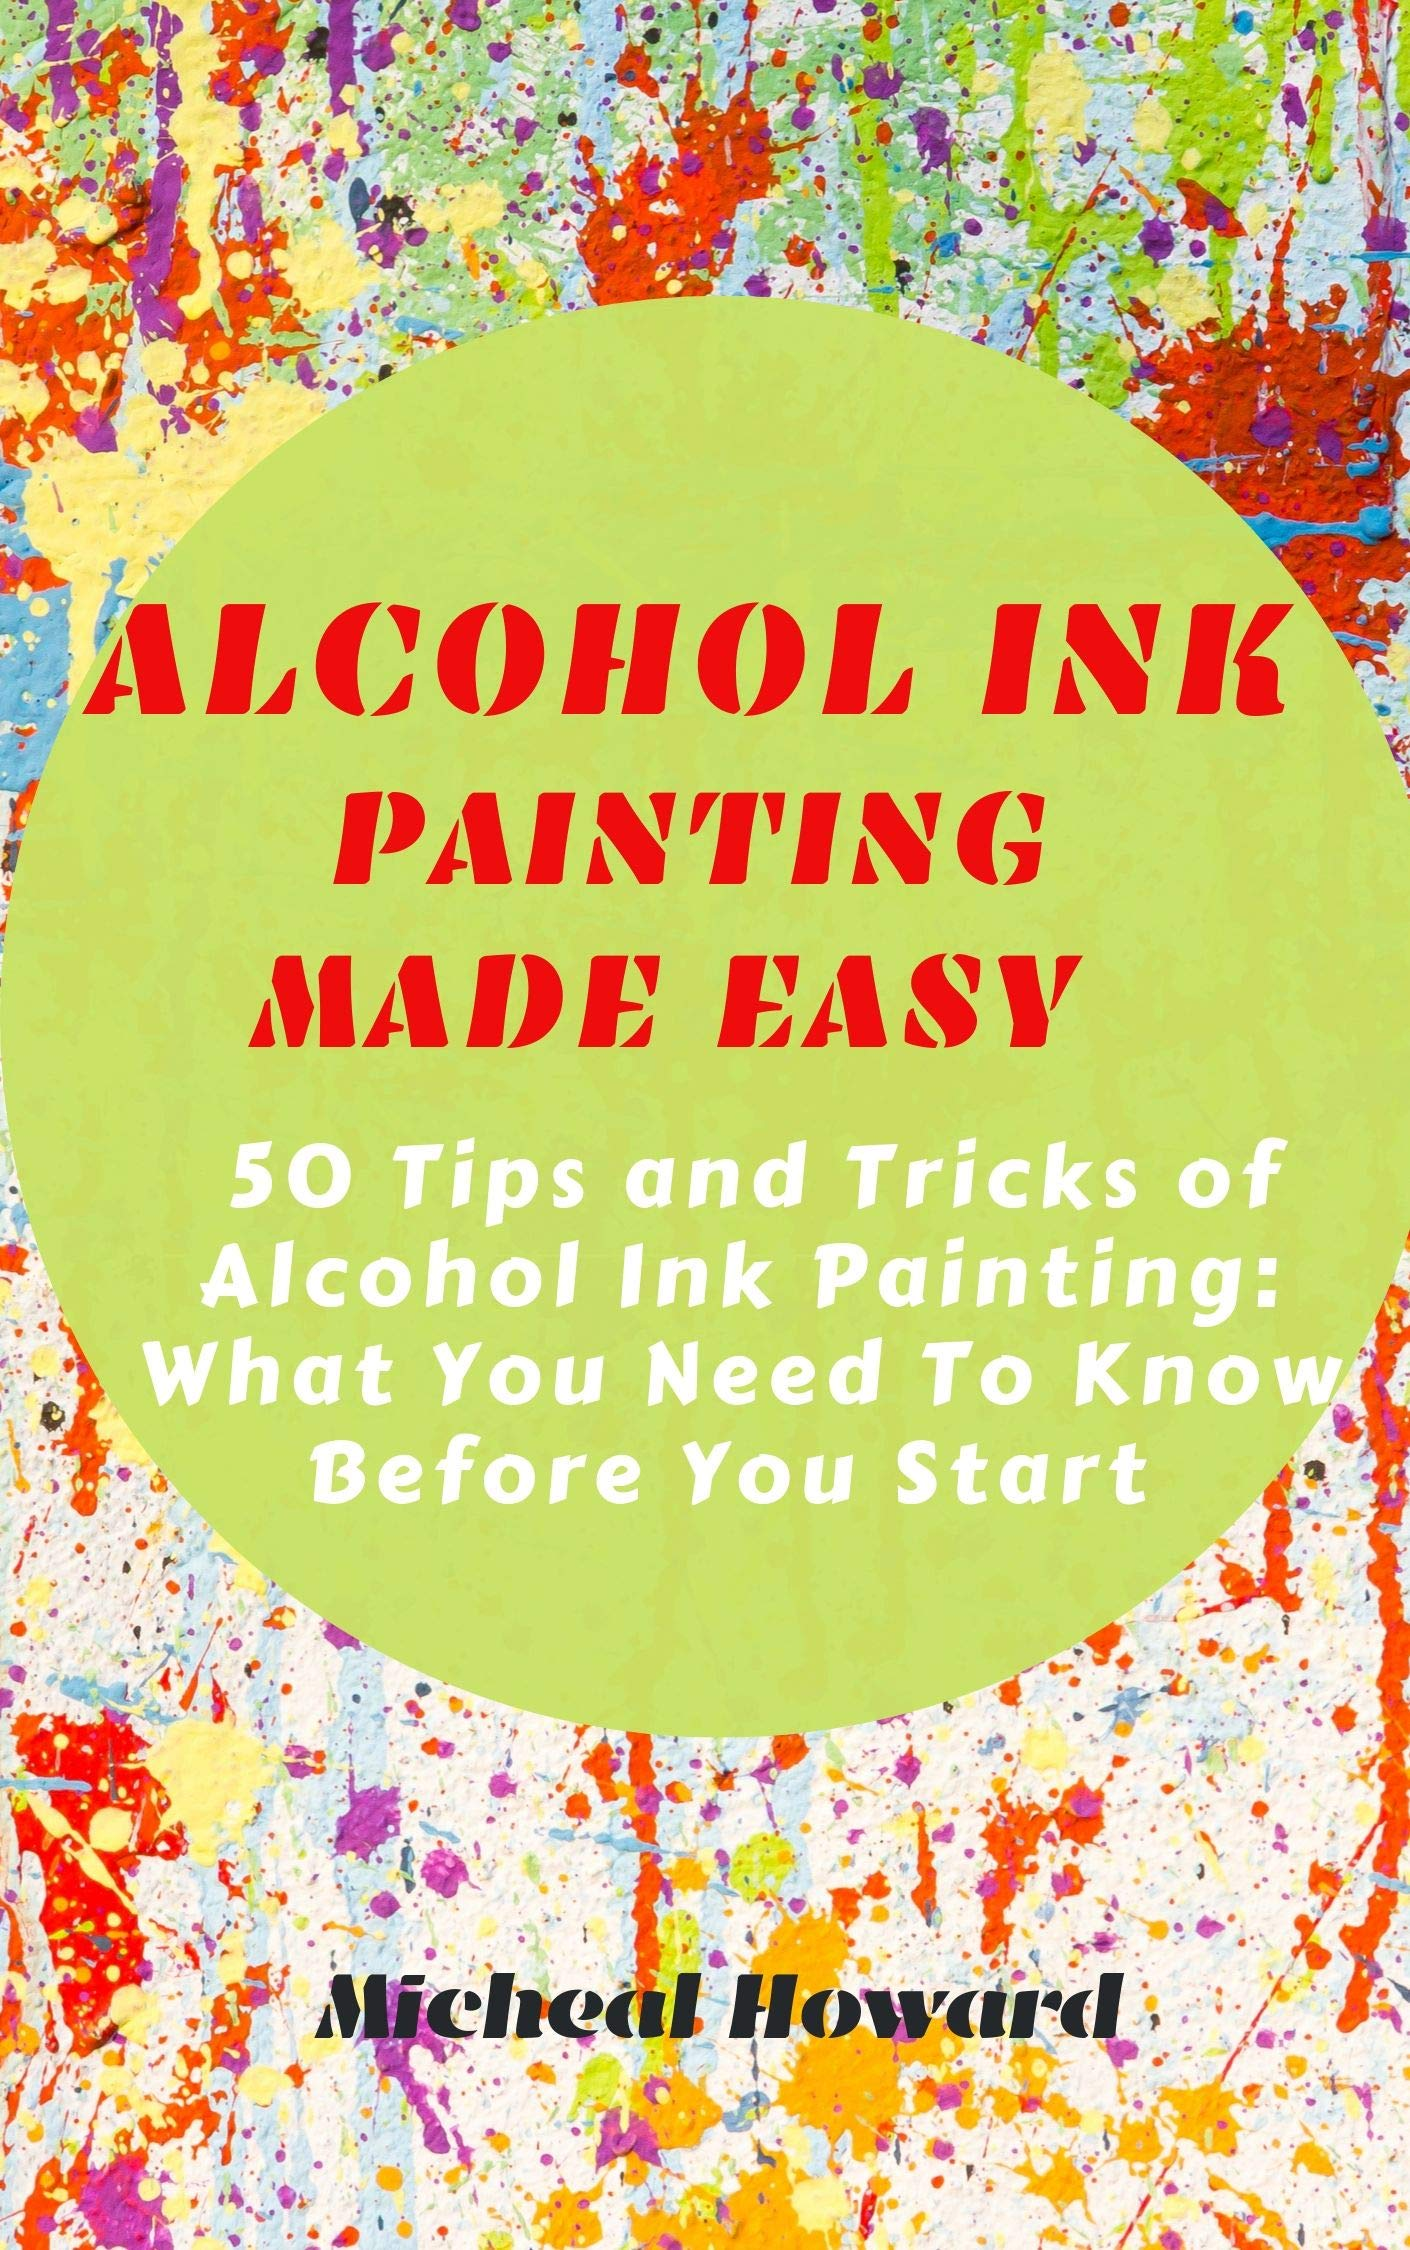 ALCOHOL INK PAINTING MADE EASY  50 Tips And Tricks To Alcohol Painting  What You Need To Know Before You Start  For Every Beginner And Professional Artist   English Edition